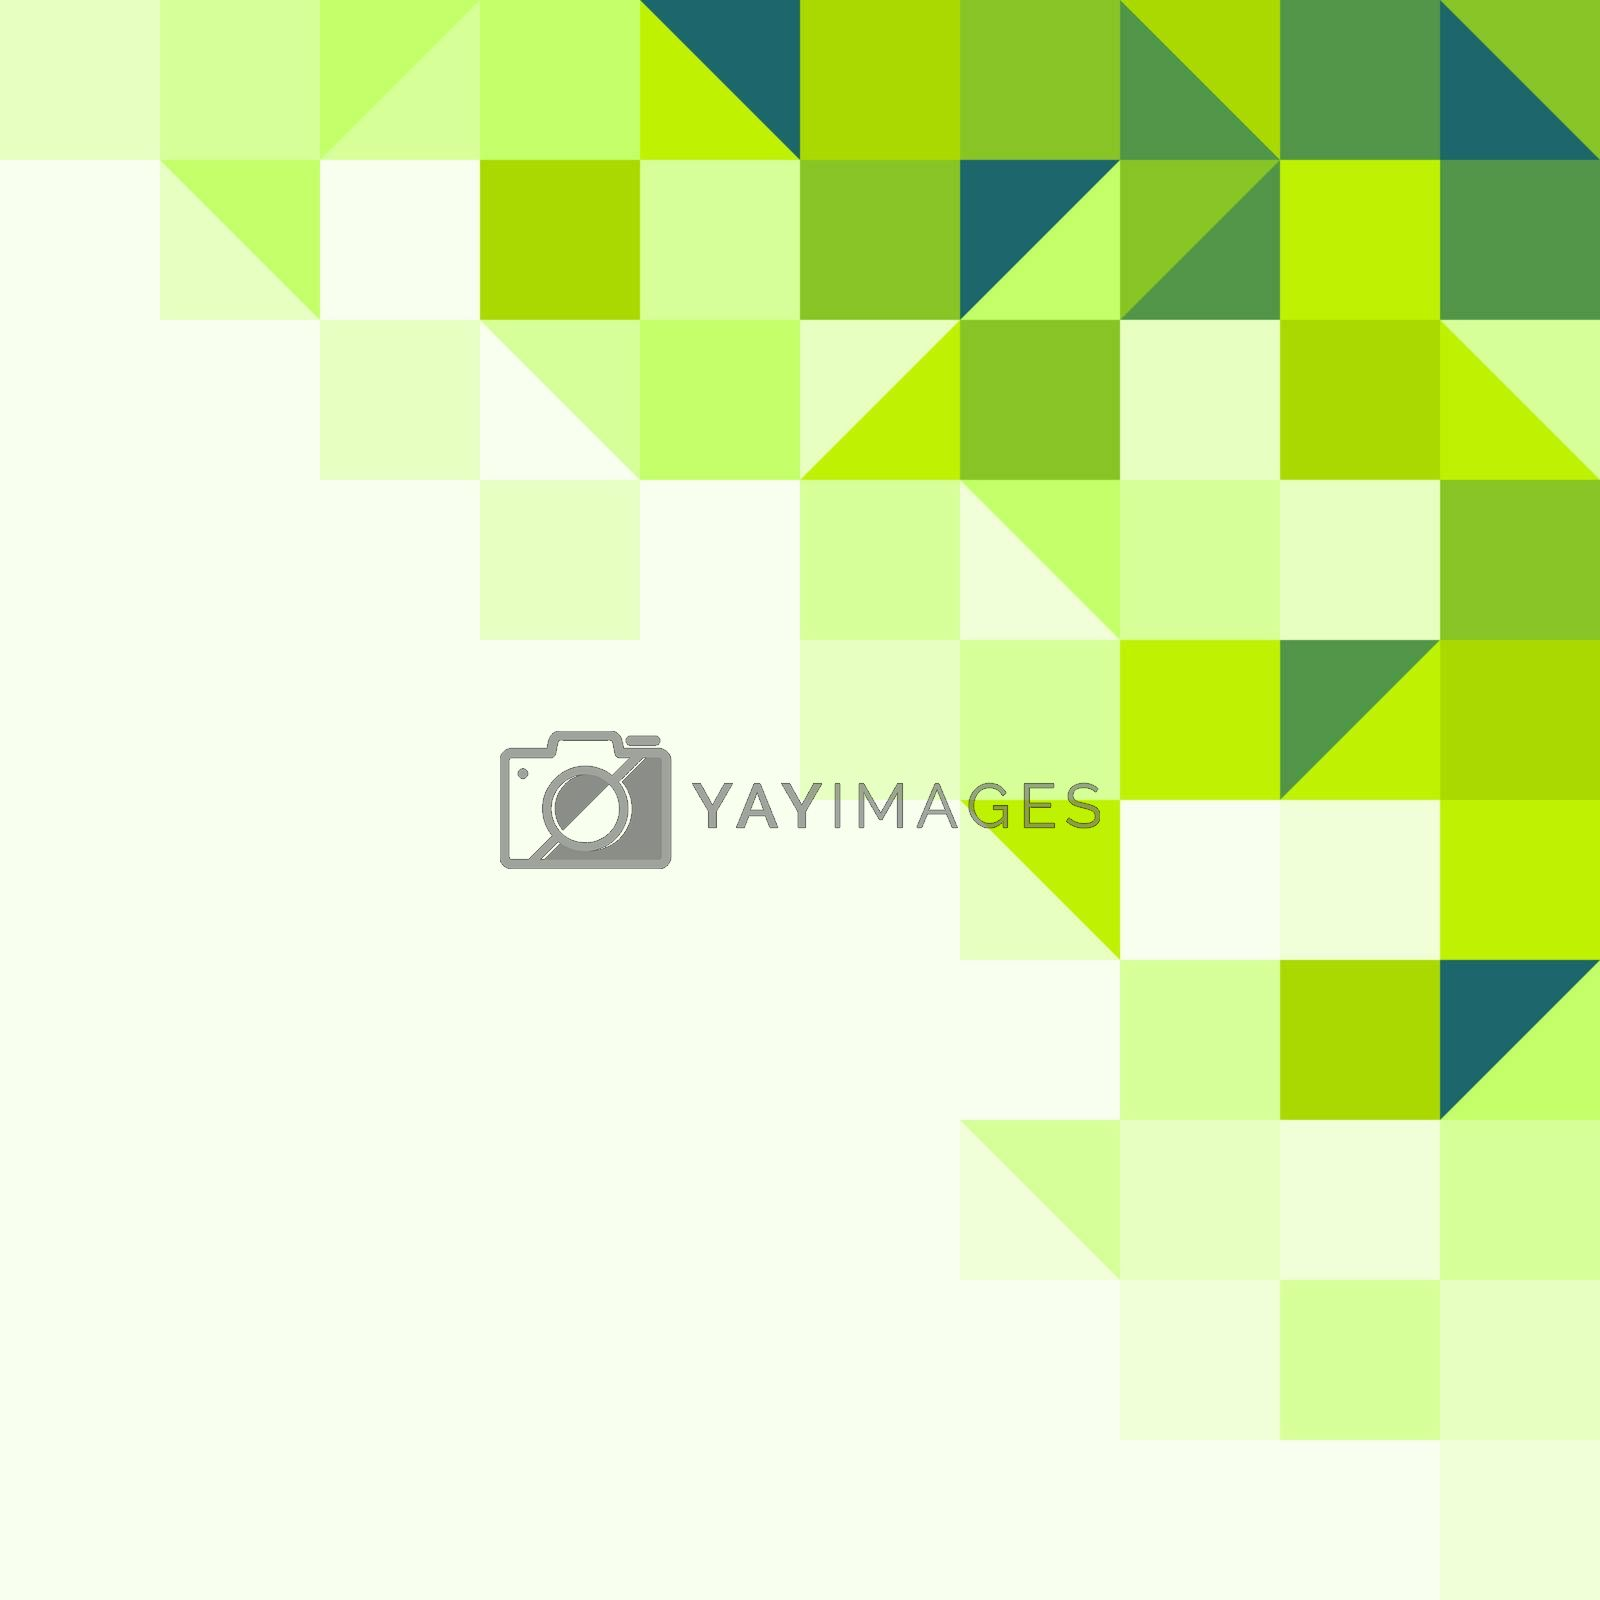 Background structure from geometric shapes in one tone